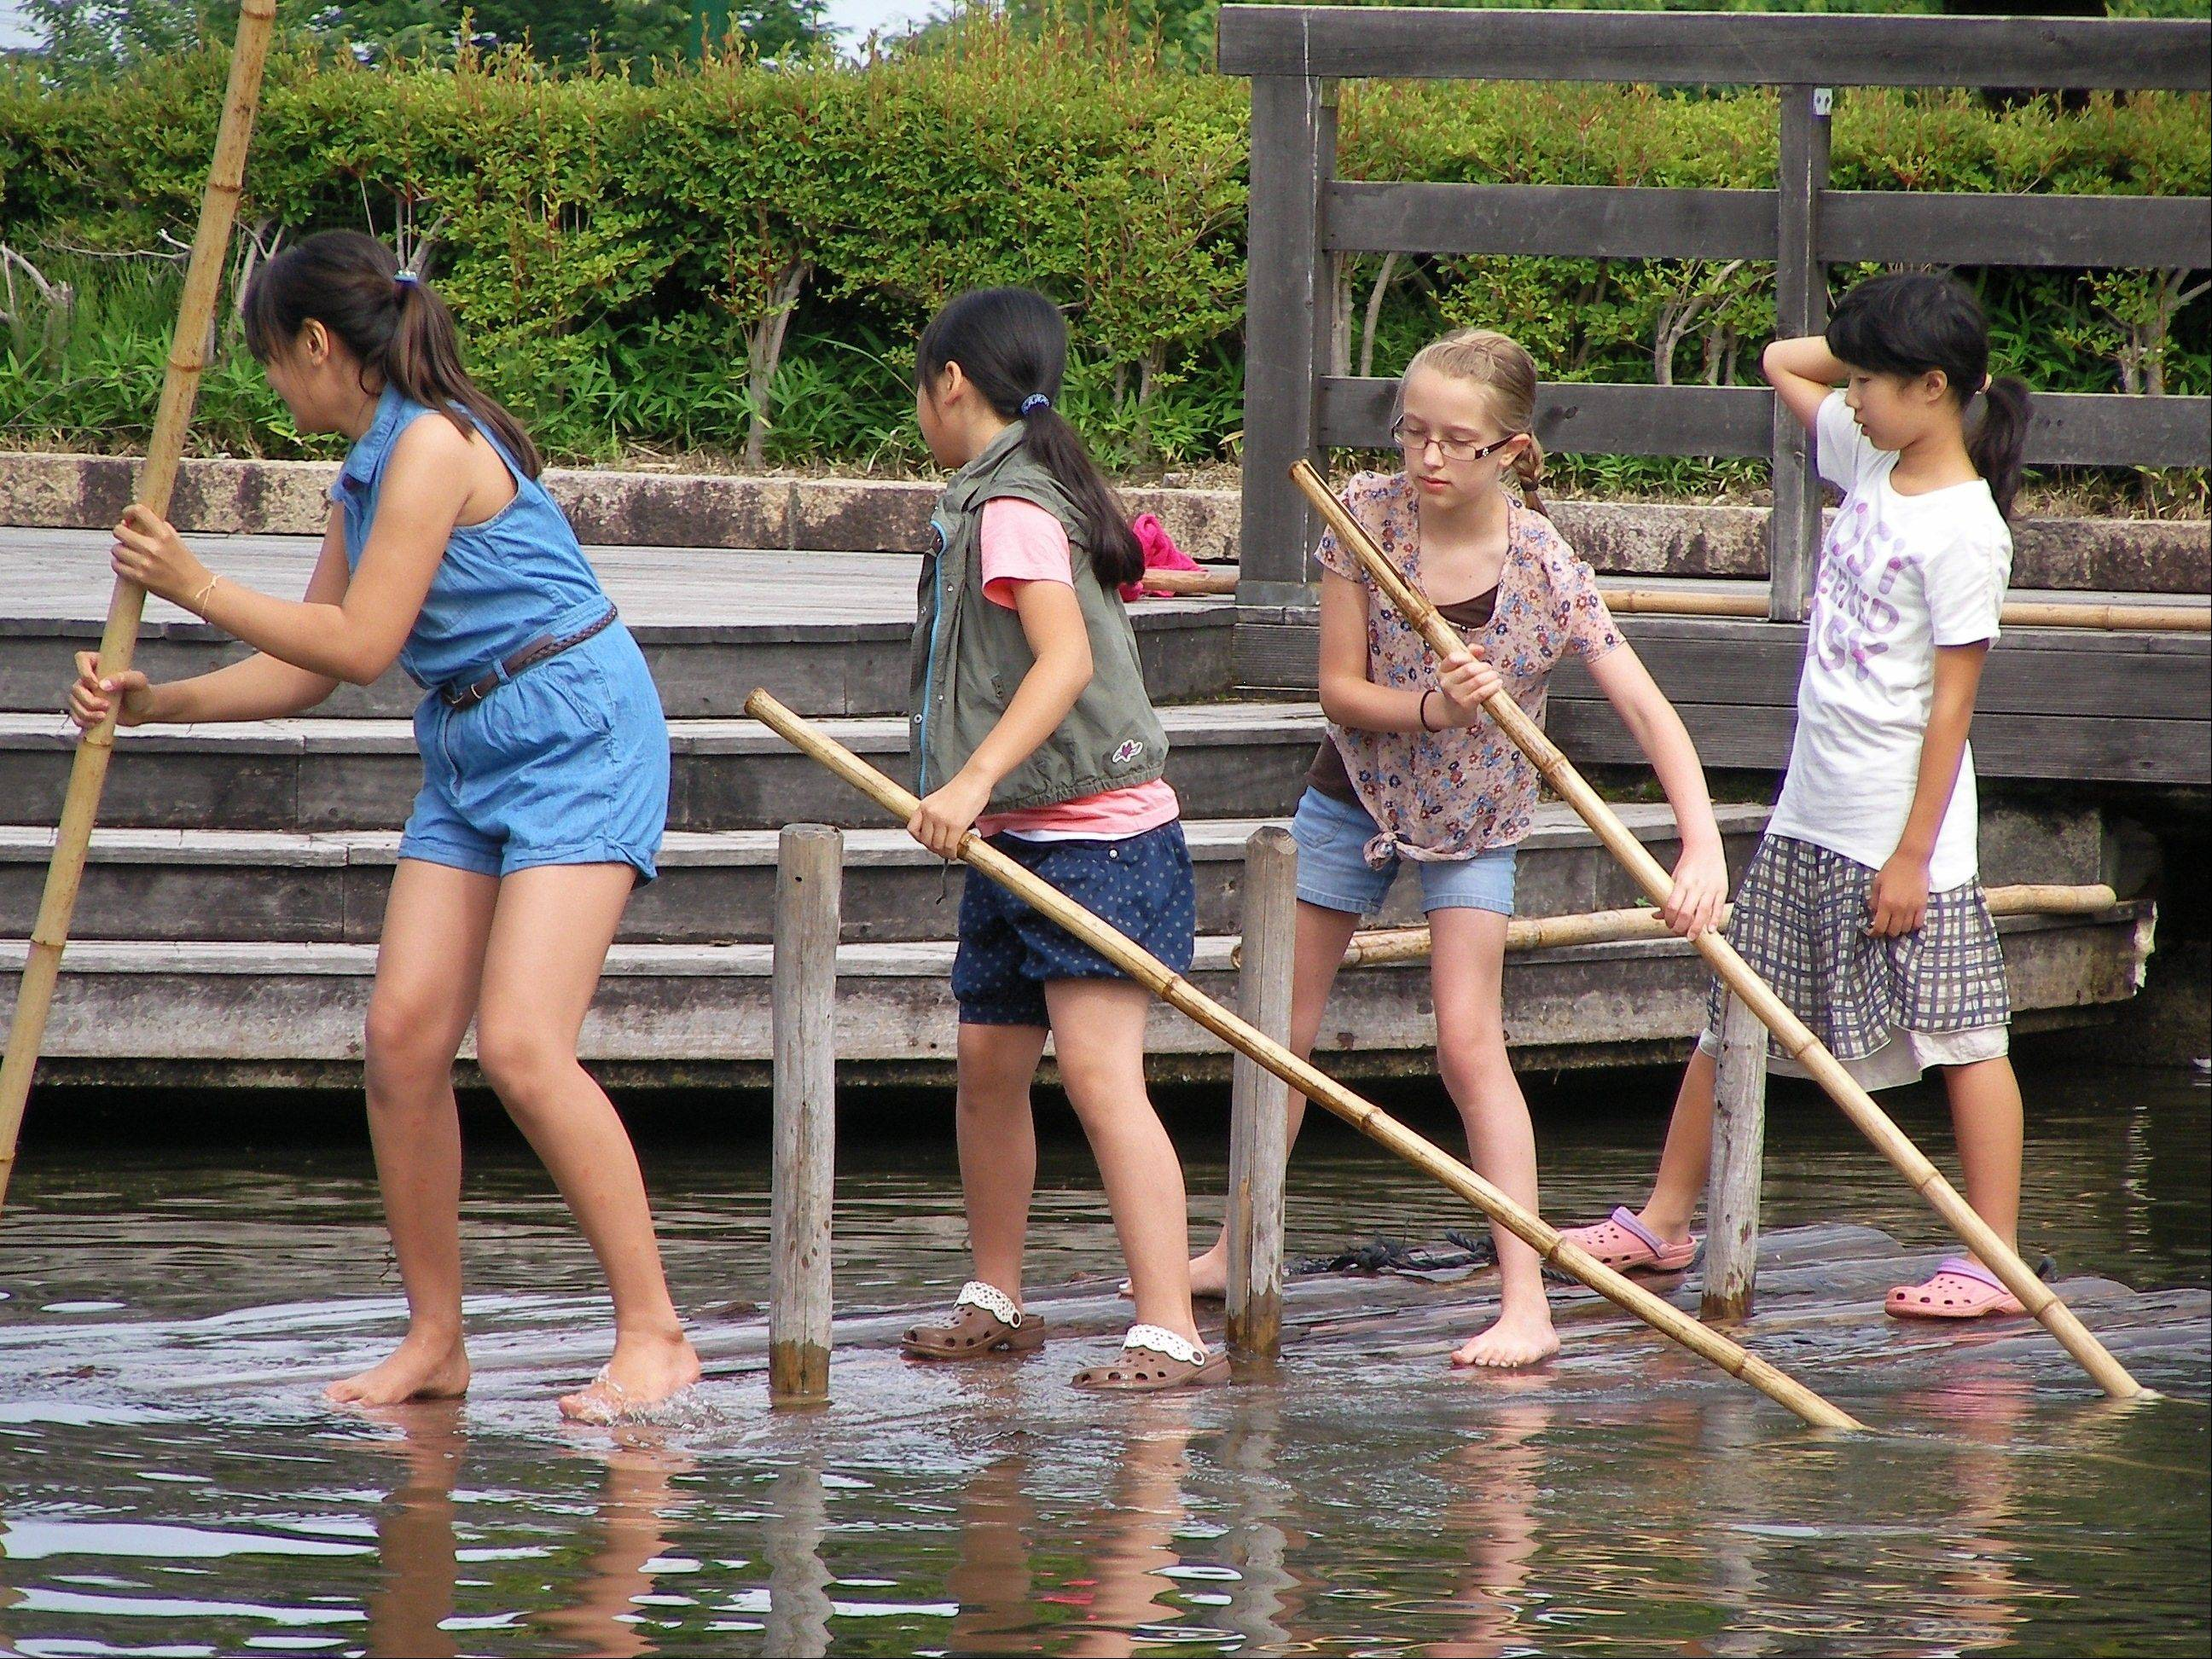 Dooley School students Emma Rogers, left, and Margie Vollkommer, middle, enjoy playing on a raft with Japanese friends.